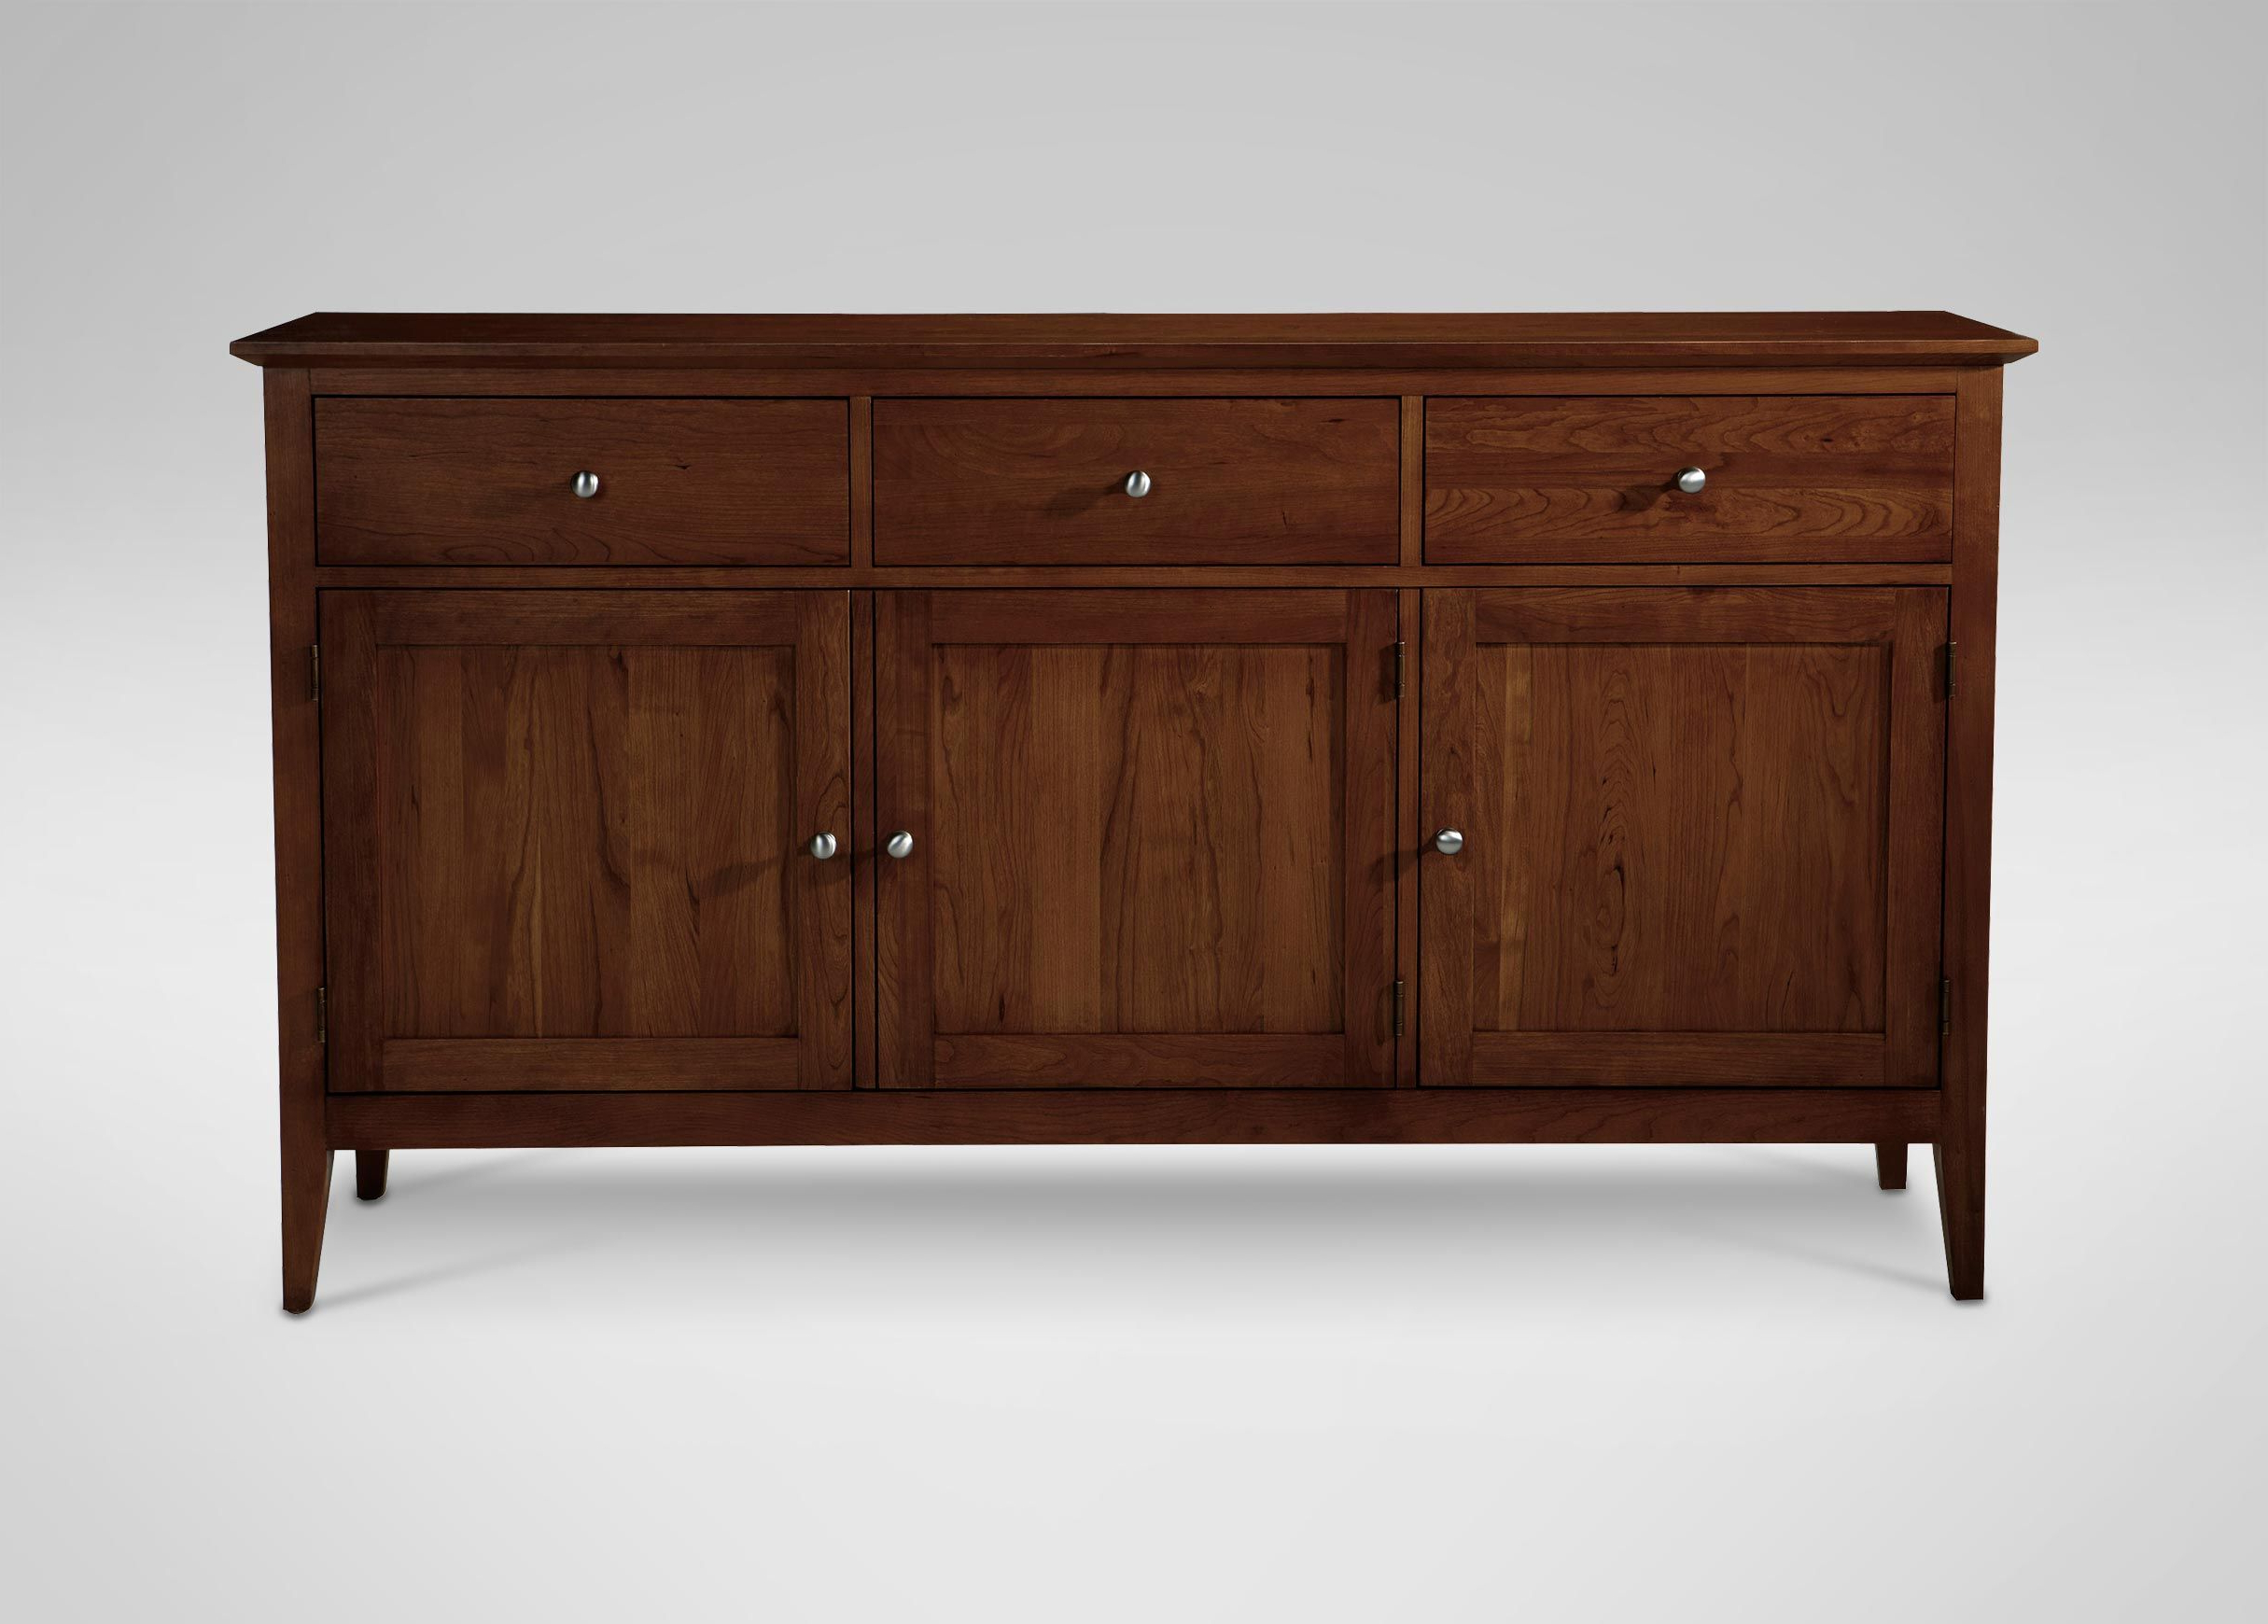 Rowan, Buffet For Well Known Calhoun Sideboards (View 13 of 20)